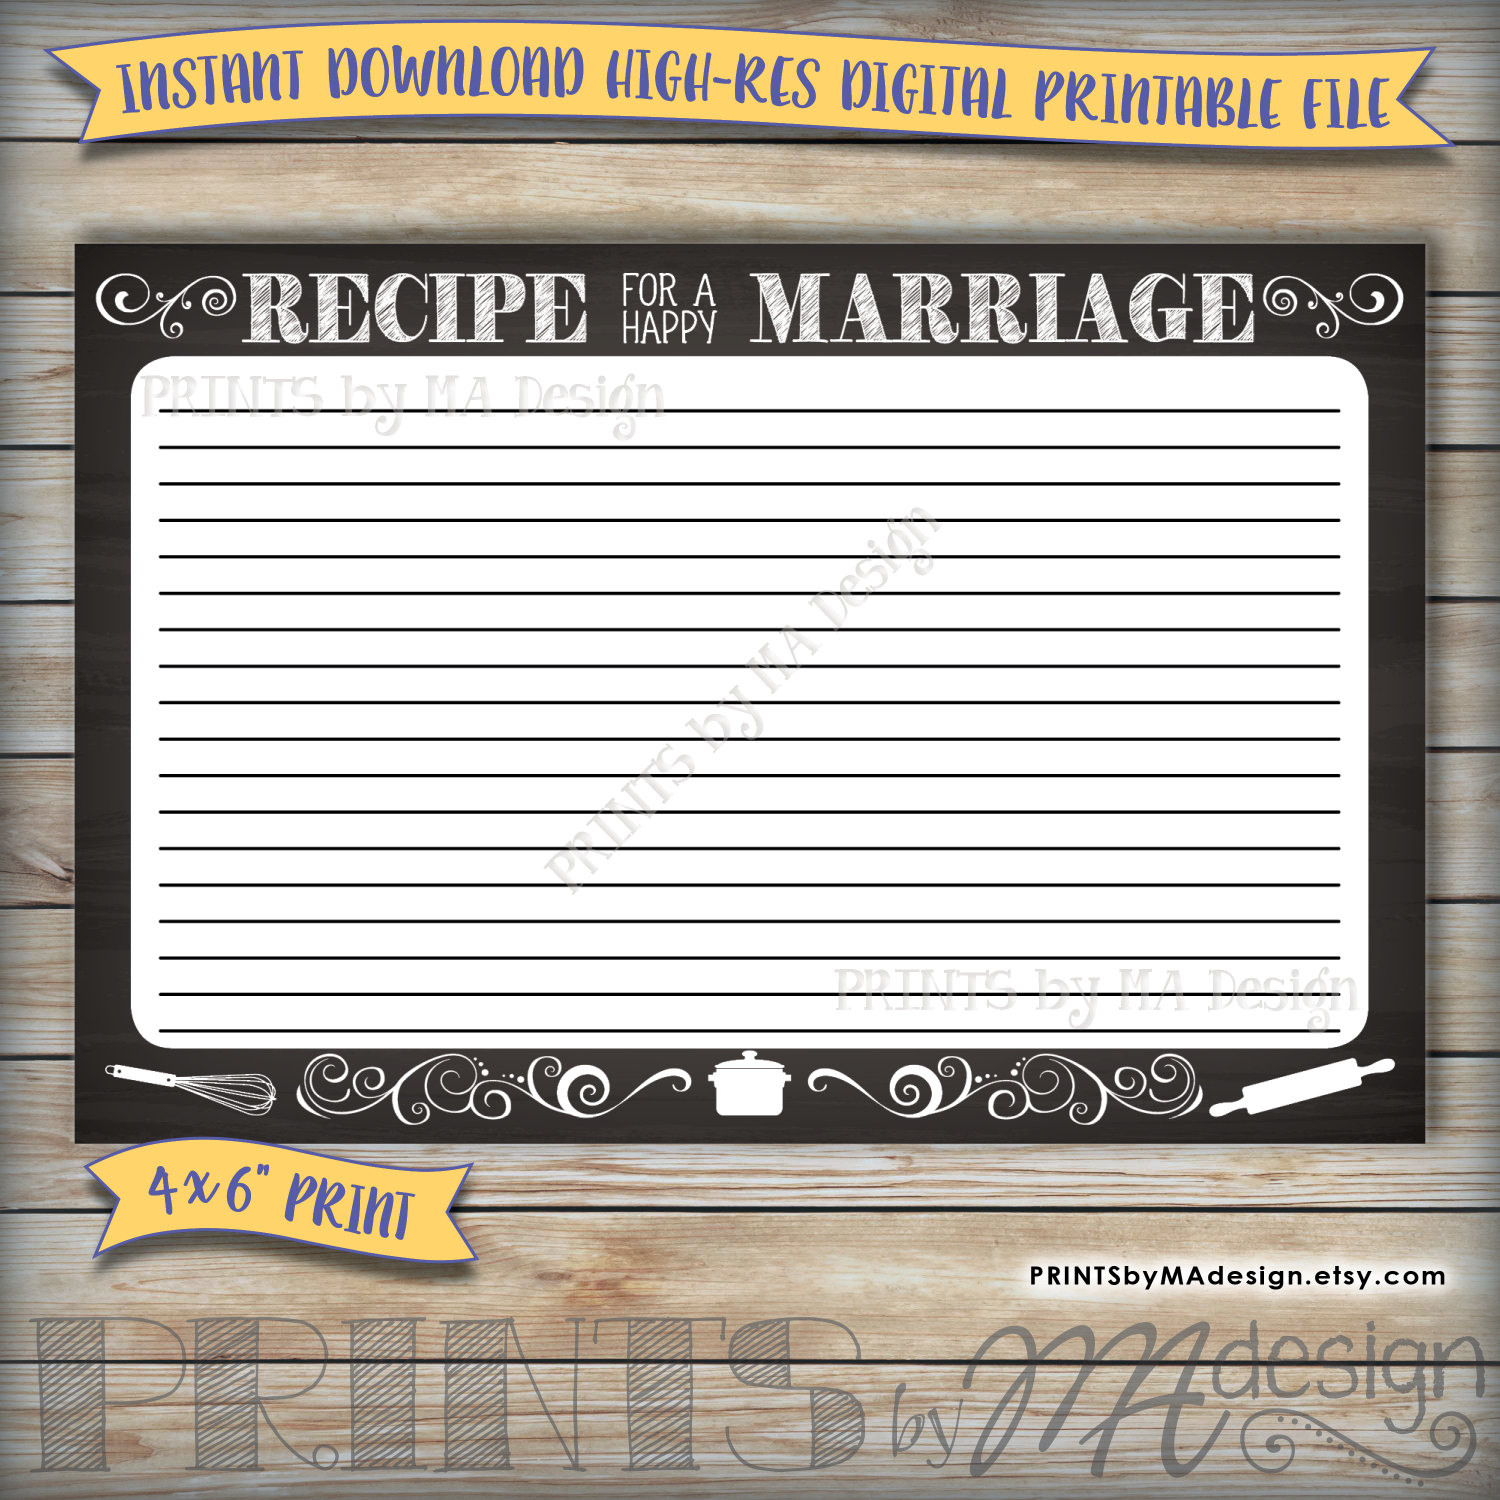 It's just a photo of Ridiculous Recipe for a Happy Marriage Printable